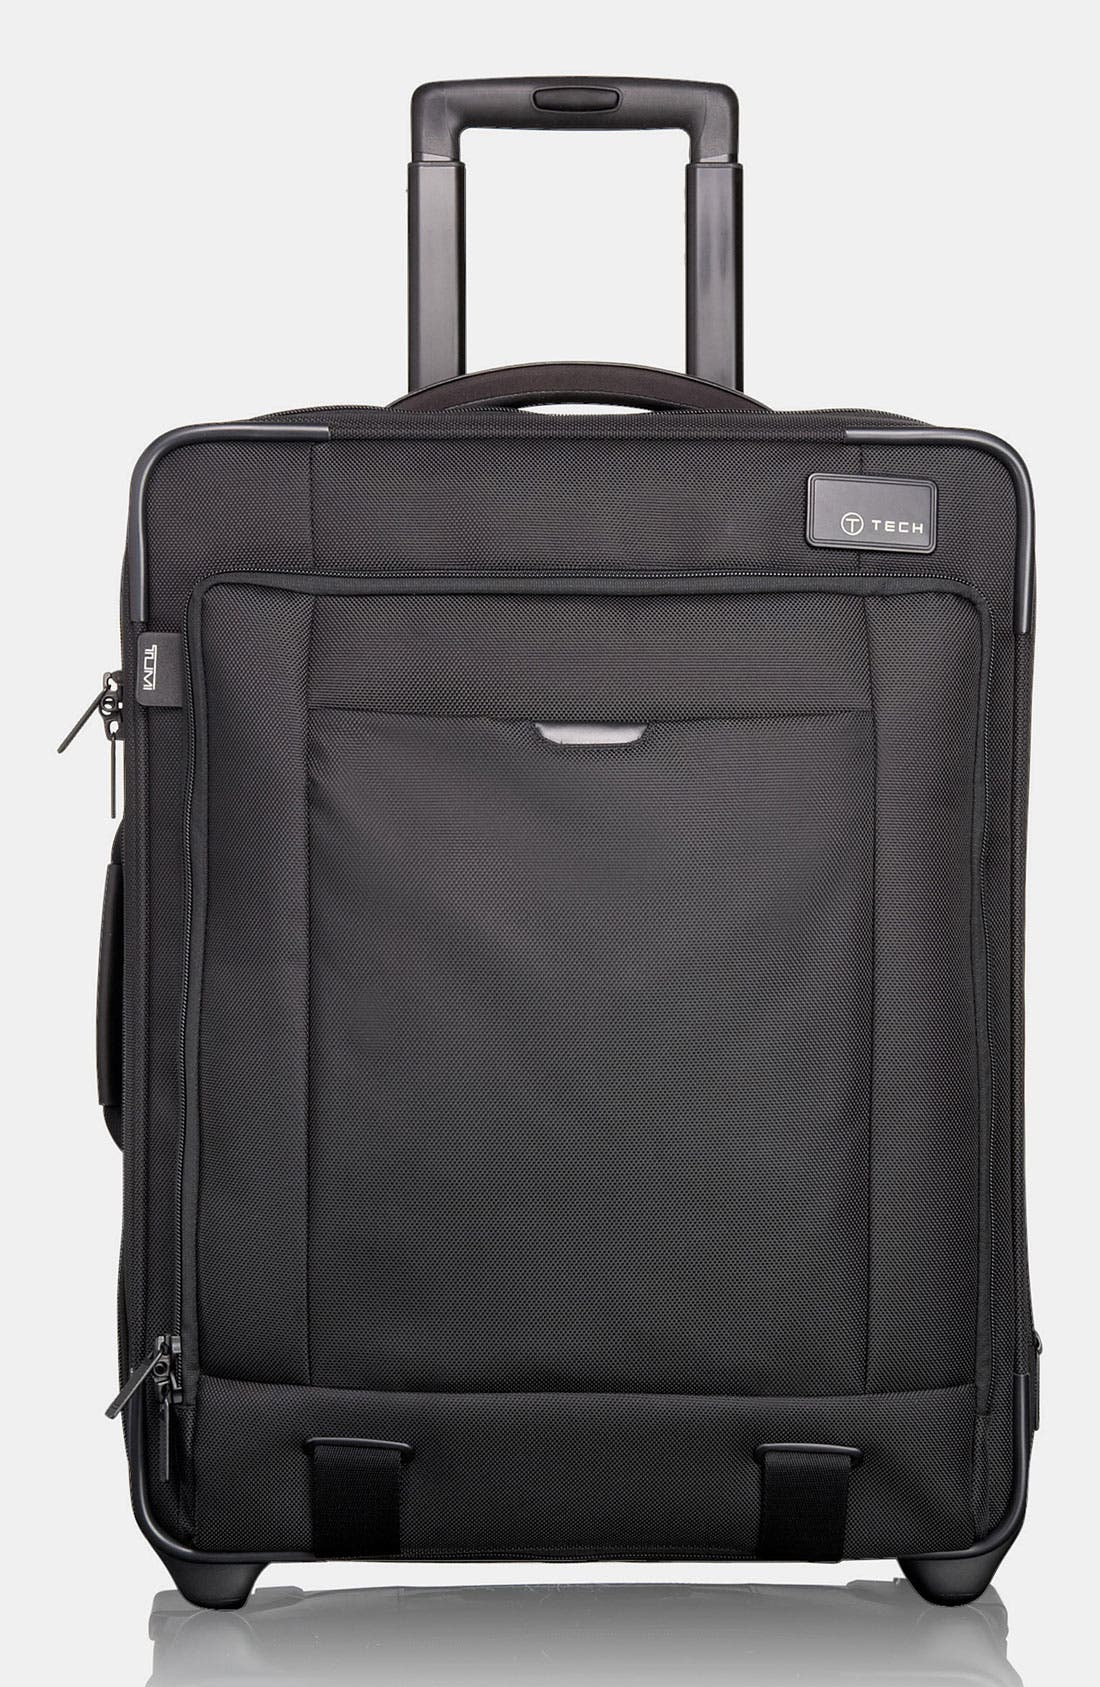 Main Image - Tumi 'T-Tech Network' Continental Carry-On